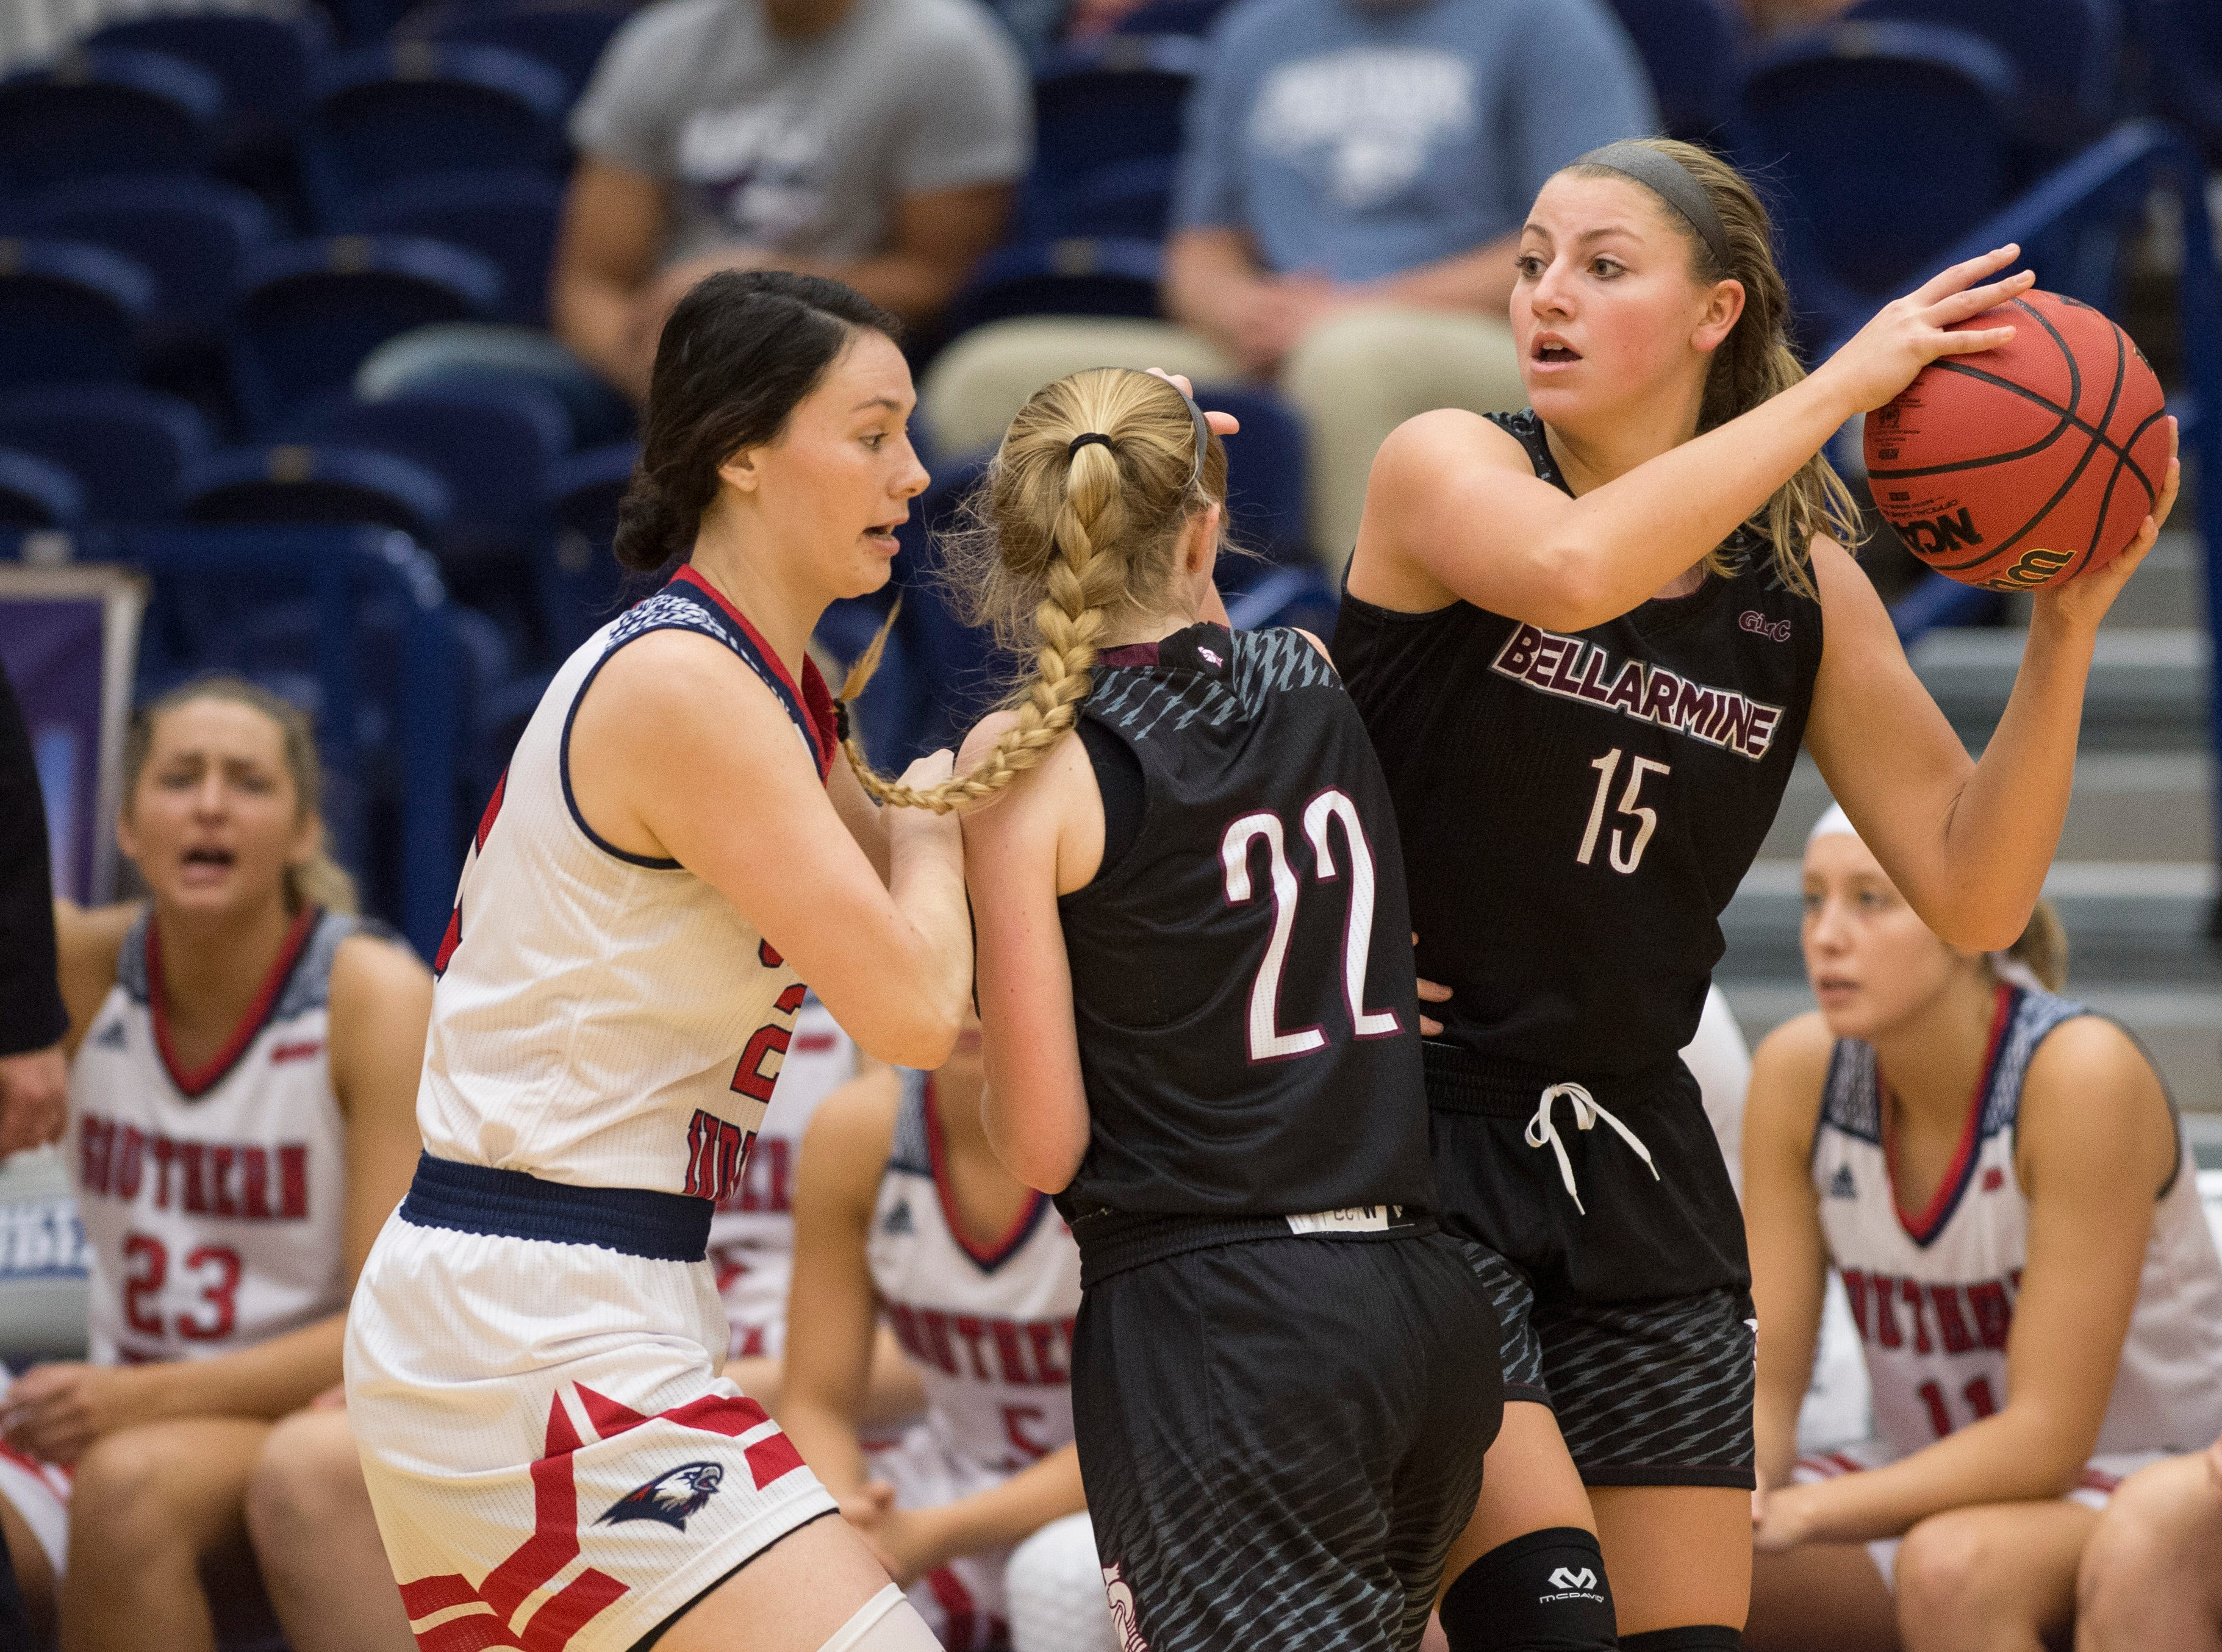 Bellarmine's Mallory Schwartz (15) looks to pass the ball during the USI vs Bellarmine game at the PAC Saturday, Dec. 1, 2018.